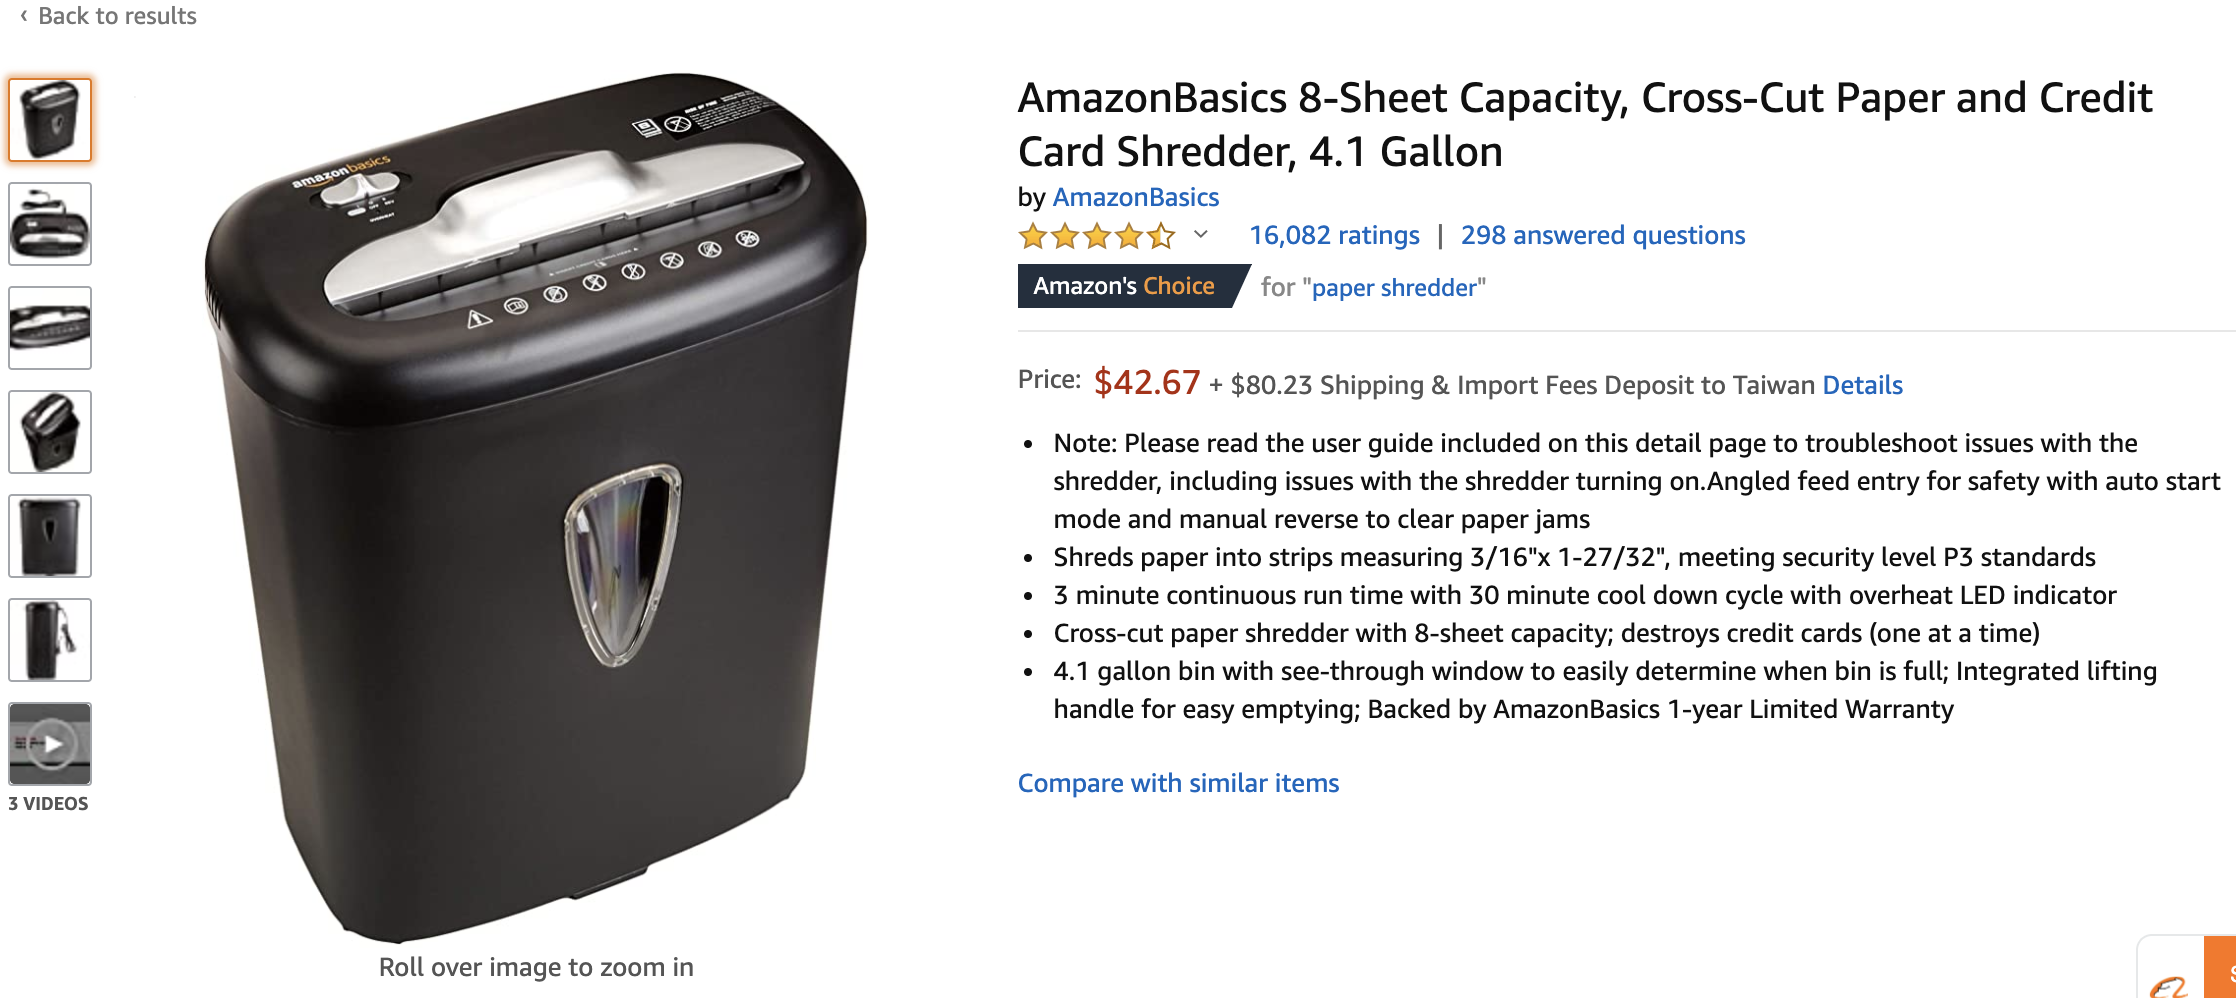 screenshot of a paper cutter for sale in Amazon as an example of Amazon outsourcing